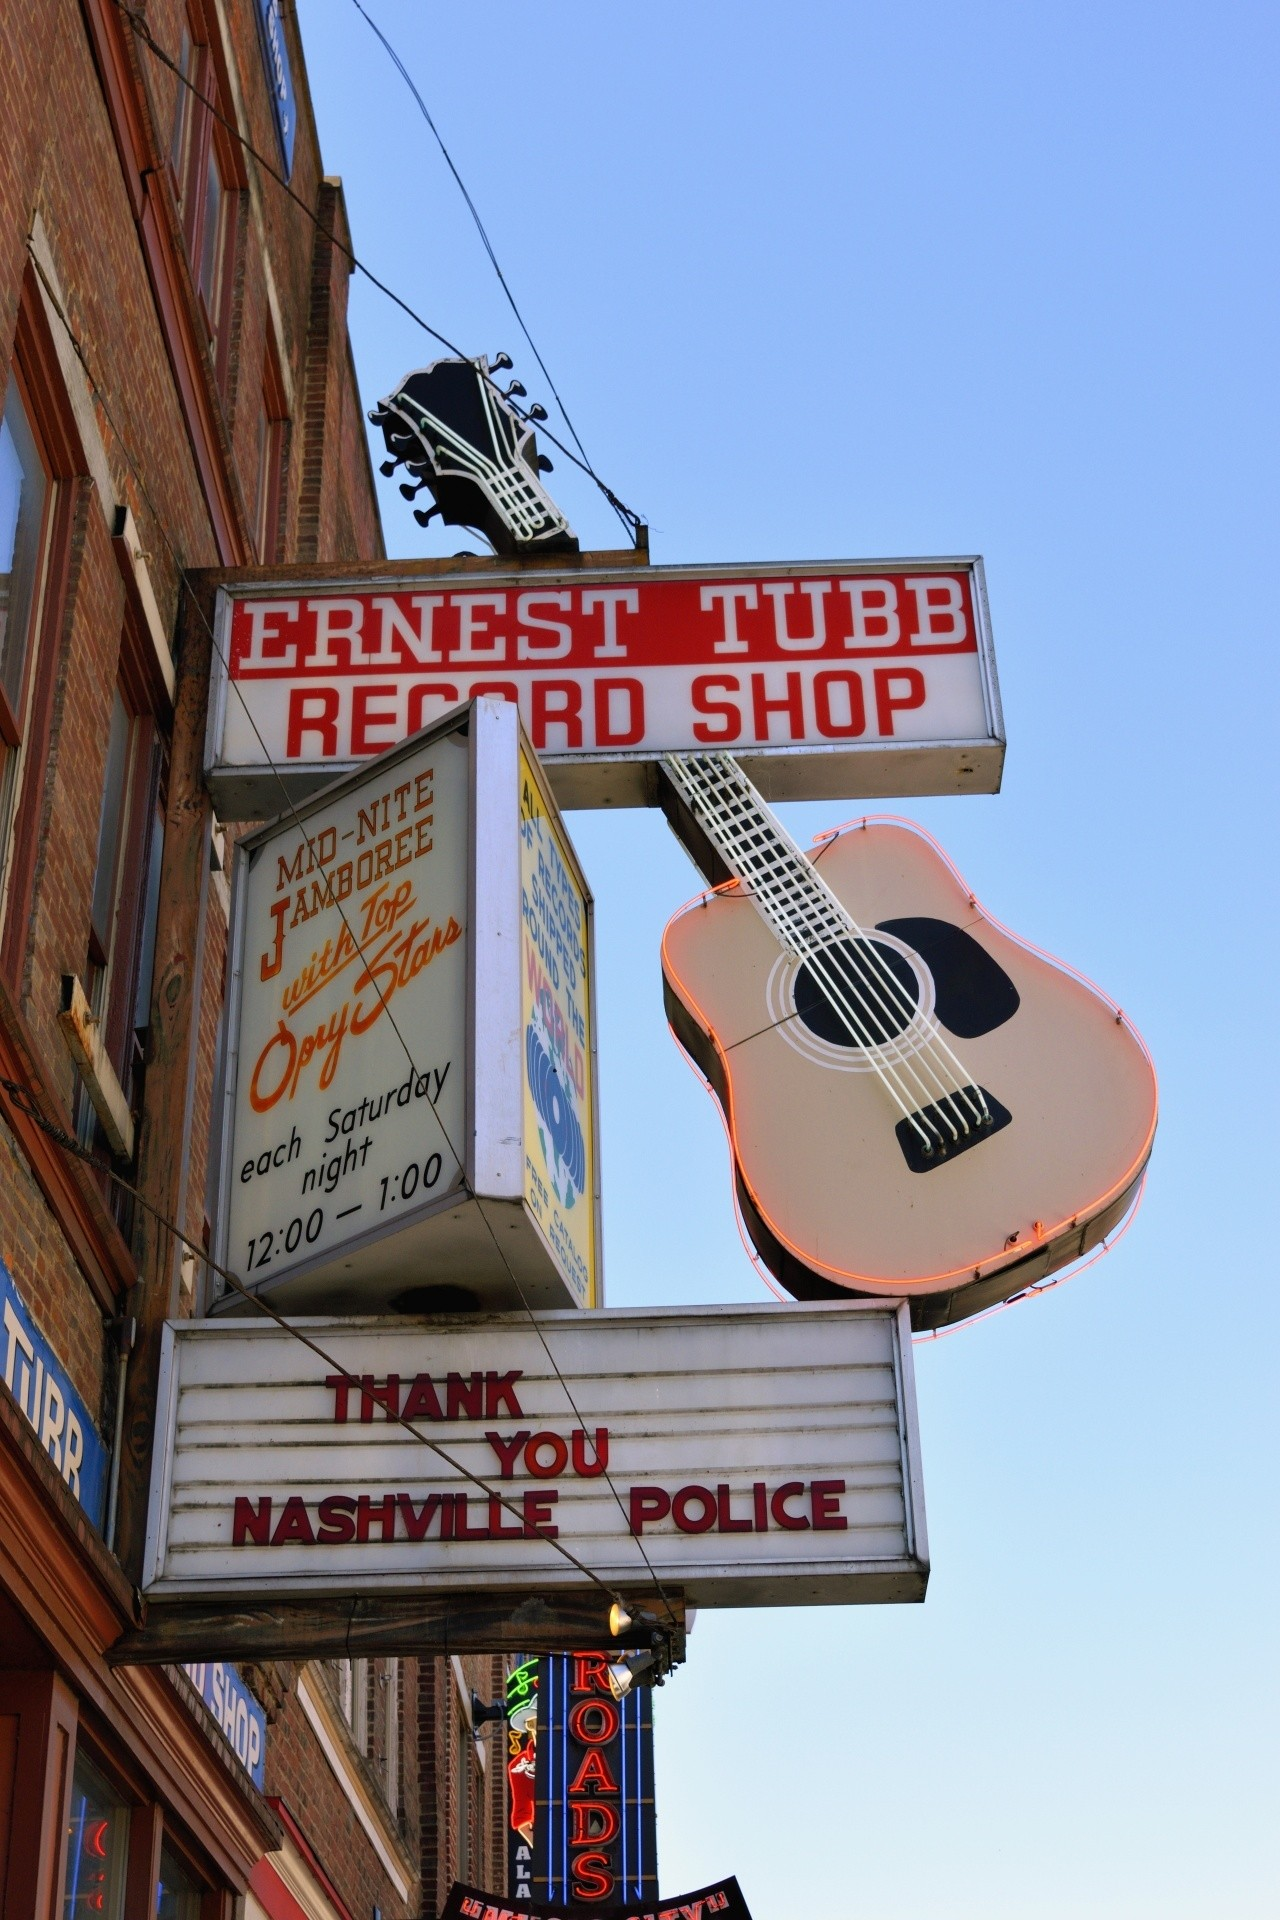 Ernest Tubbs Record Shop